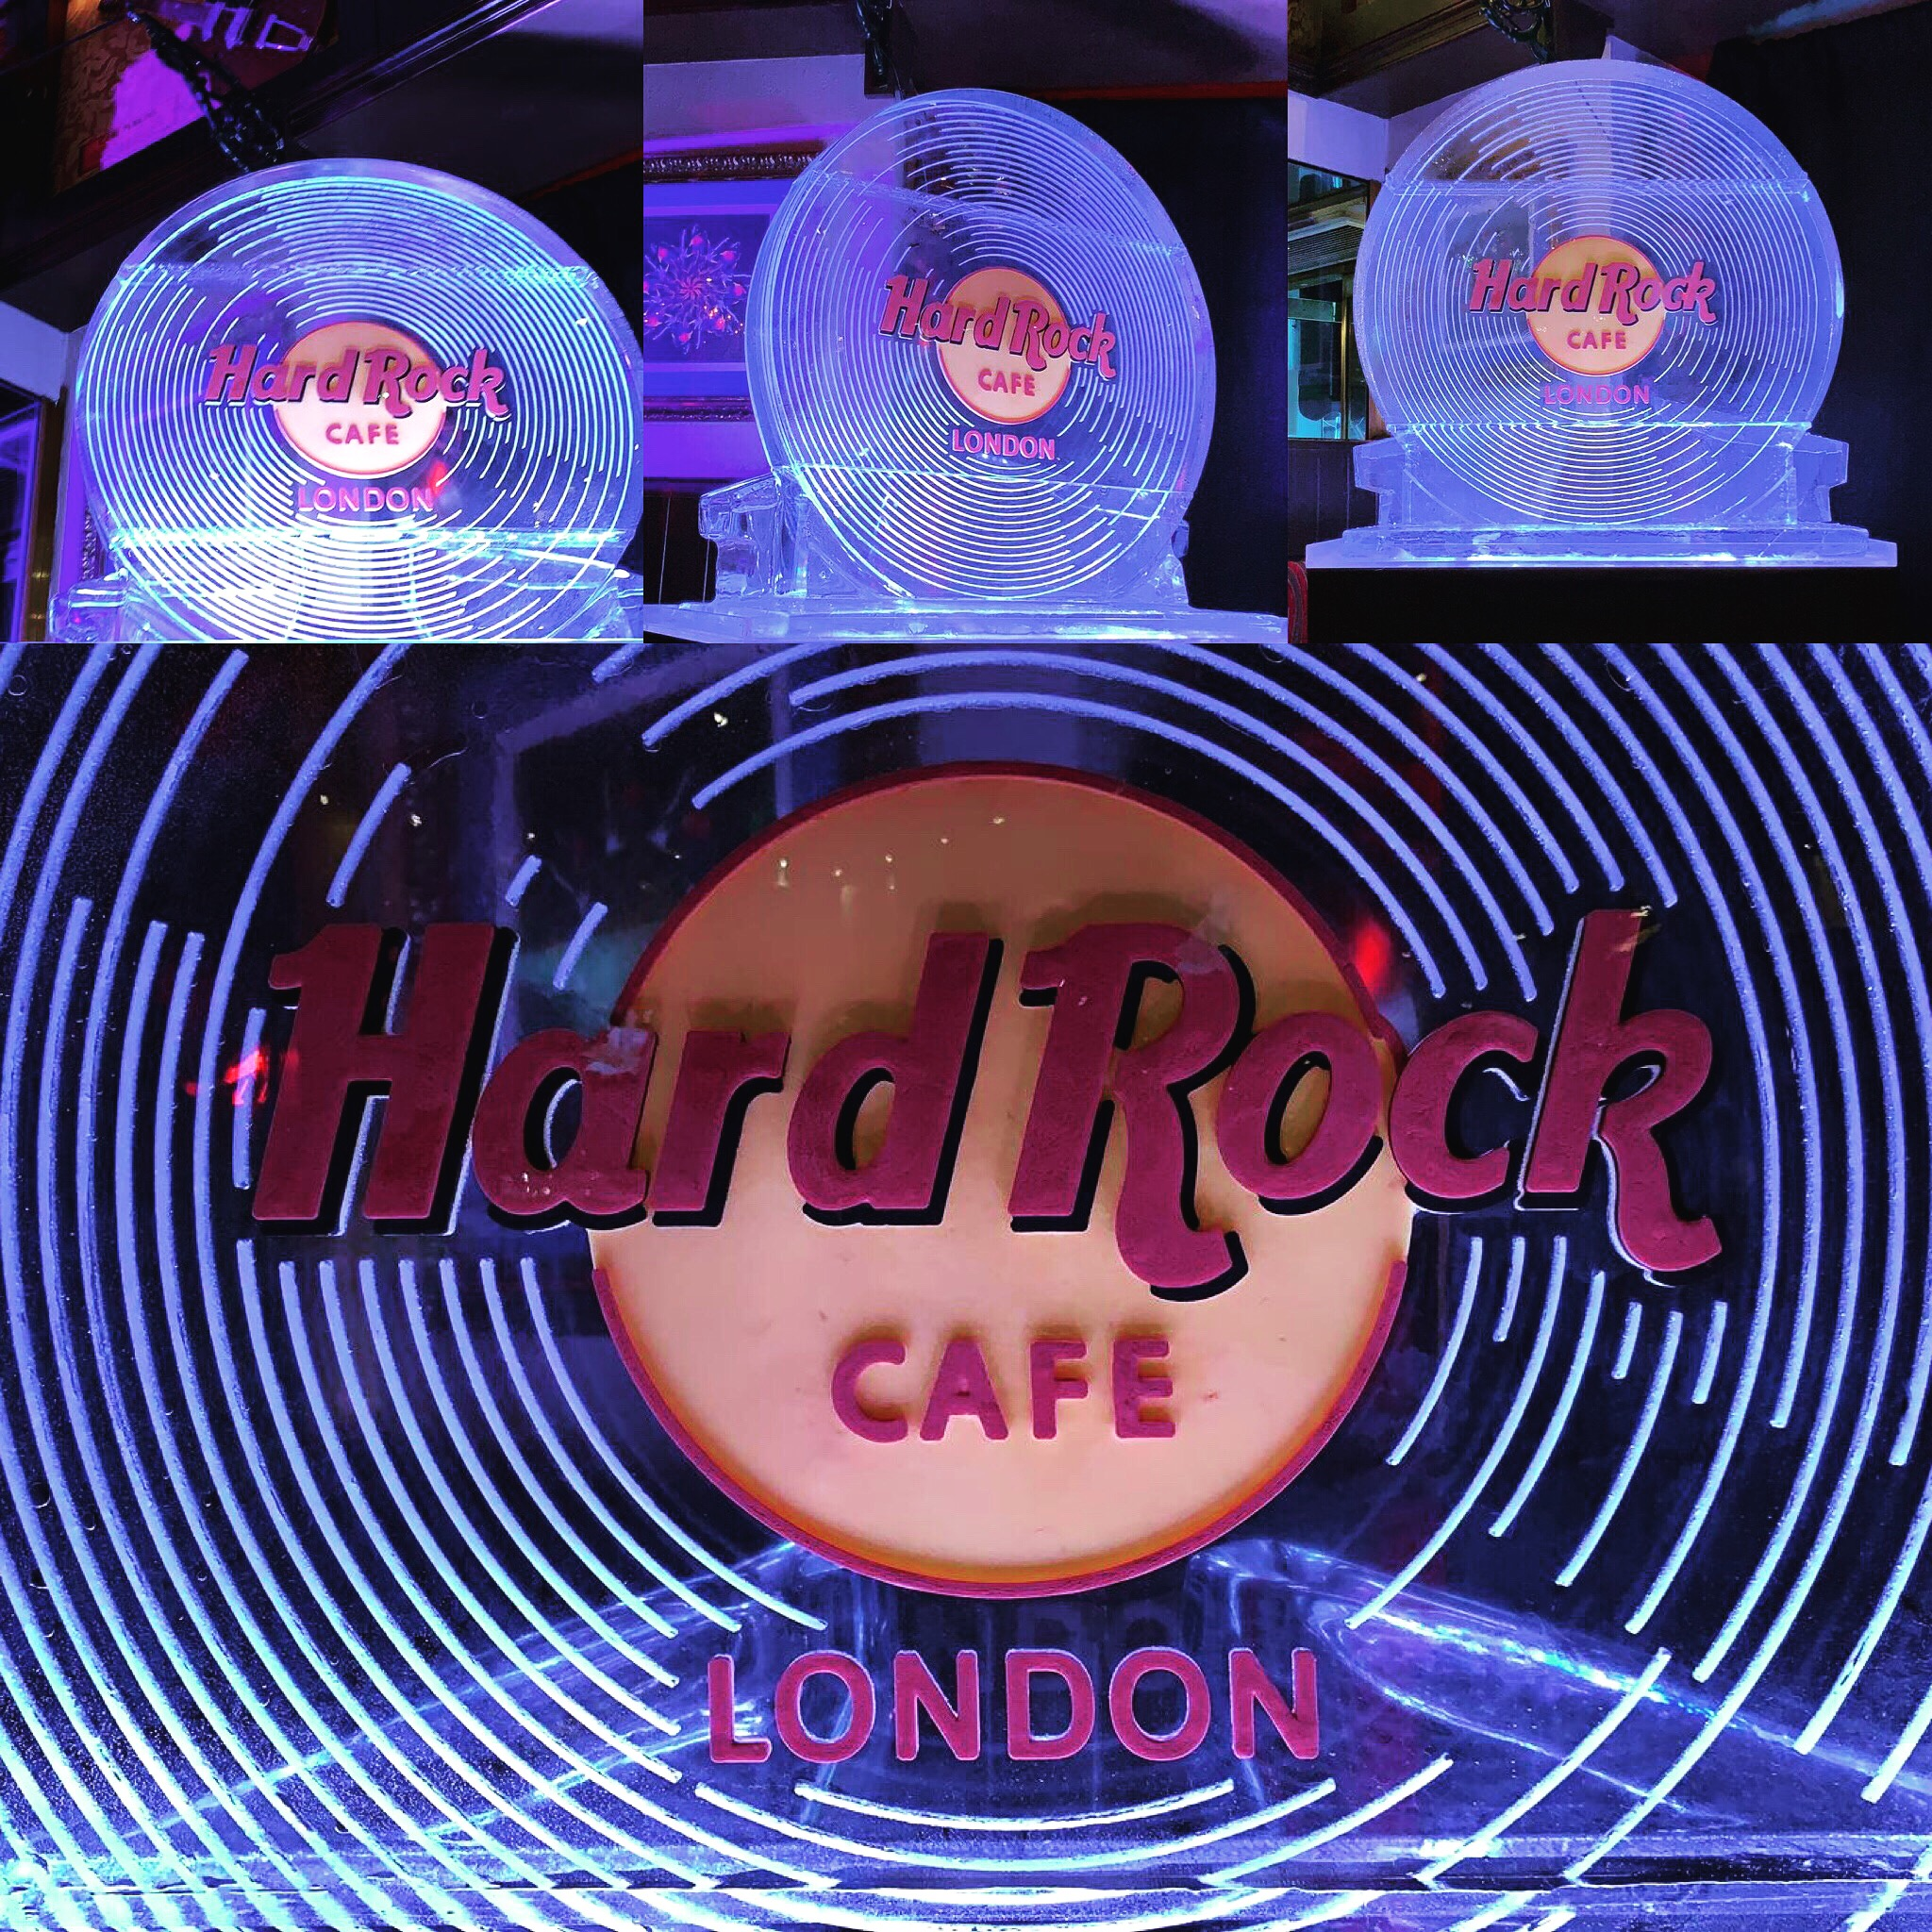 VINYL IN ICE AT HARD ROCK CAFE LONDON